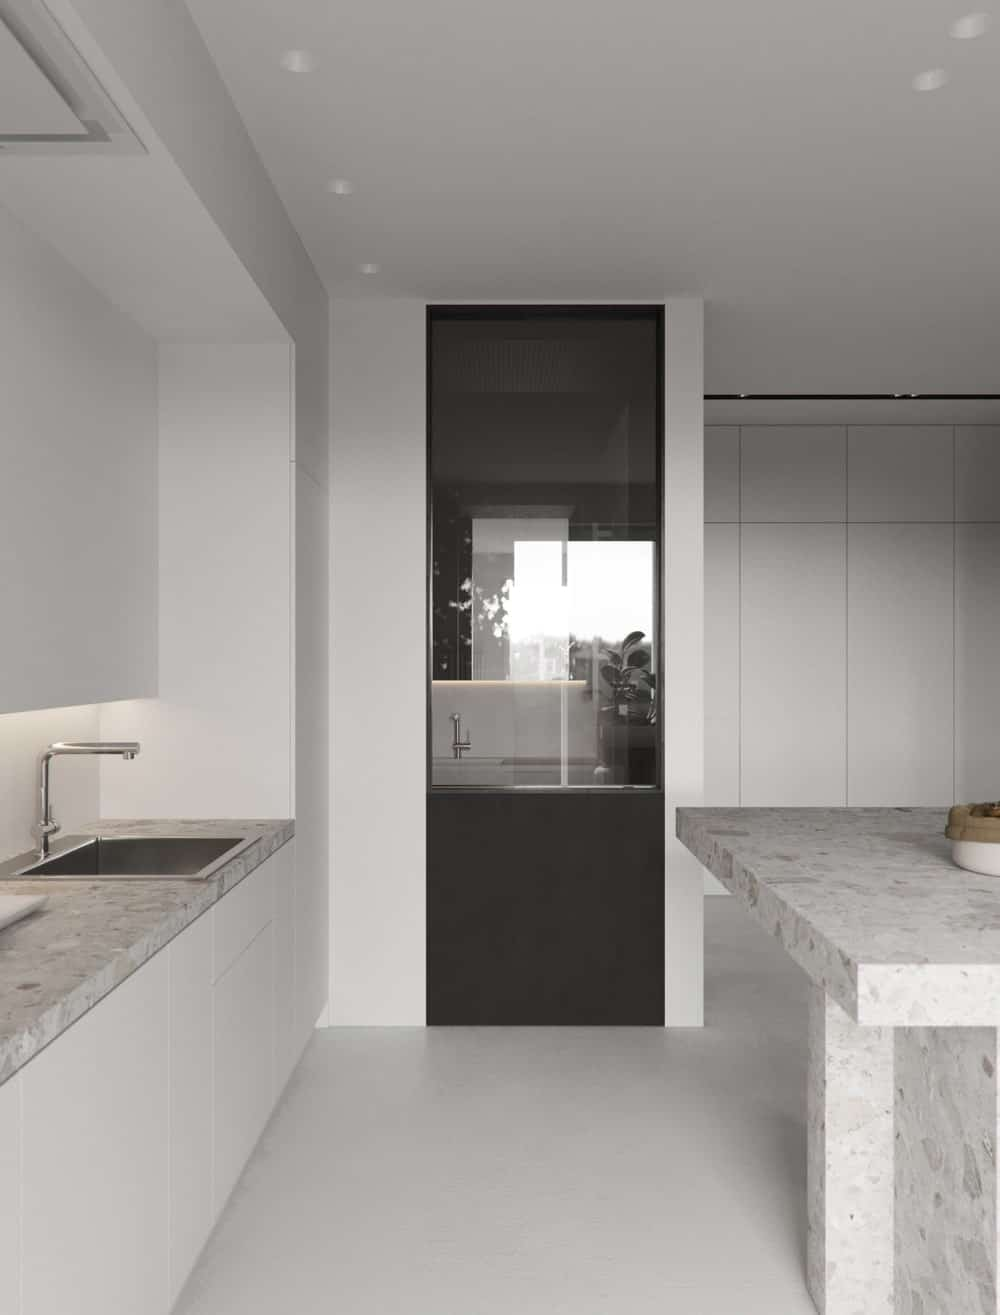 The dark window that leads to the bathroom stands out in the white kitchen. This has a glass panel that shows a glimpse of the bathroom vanity.